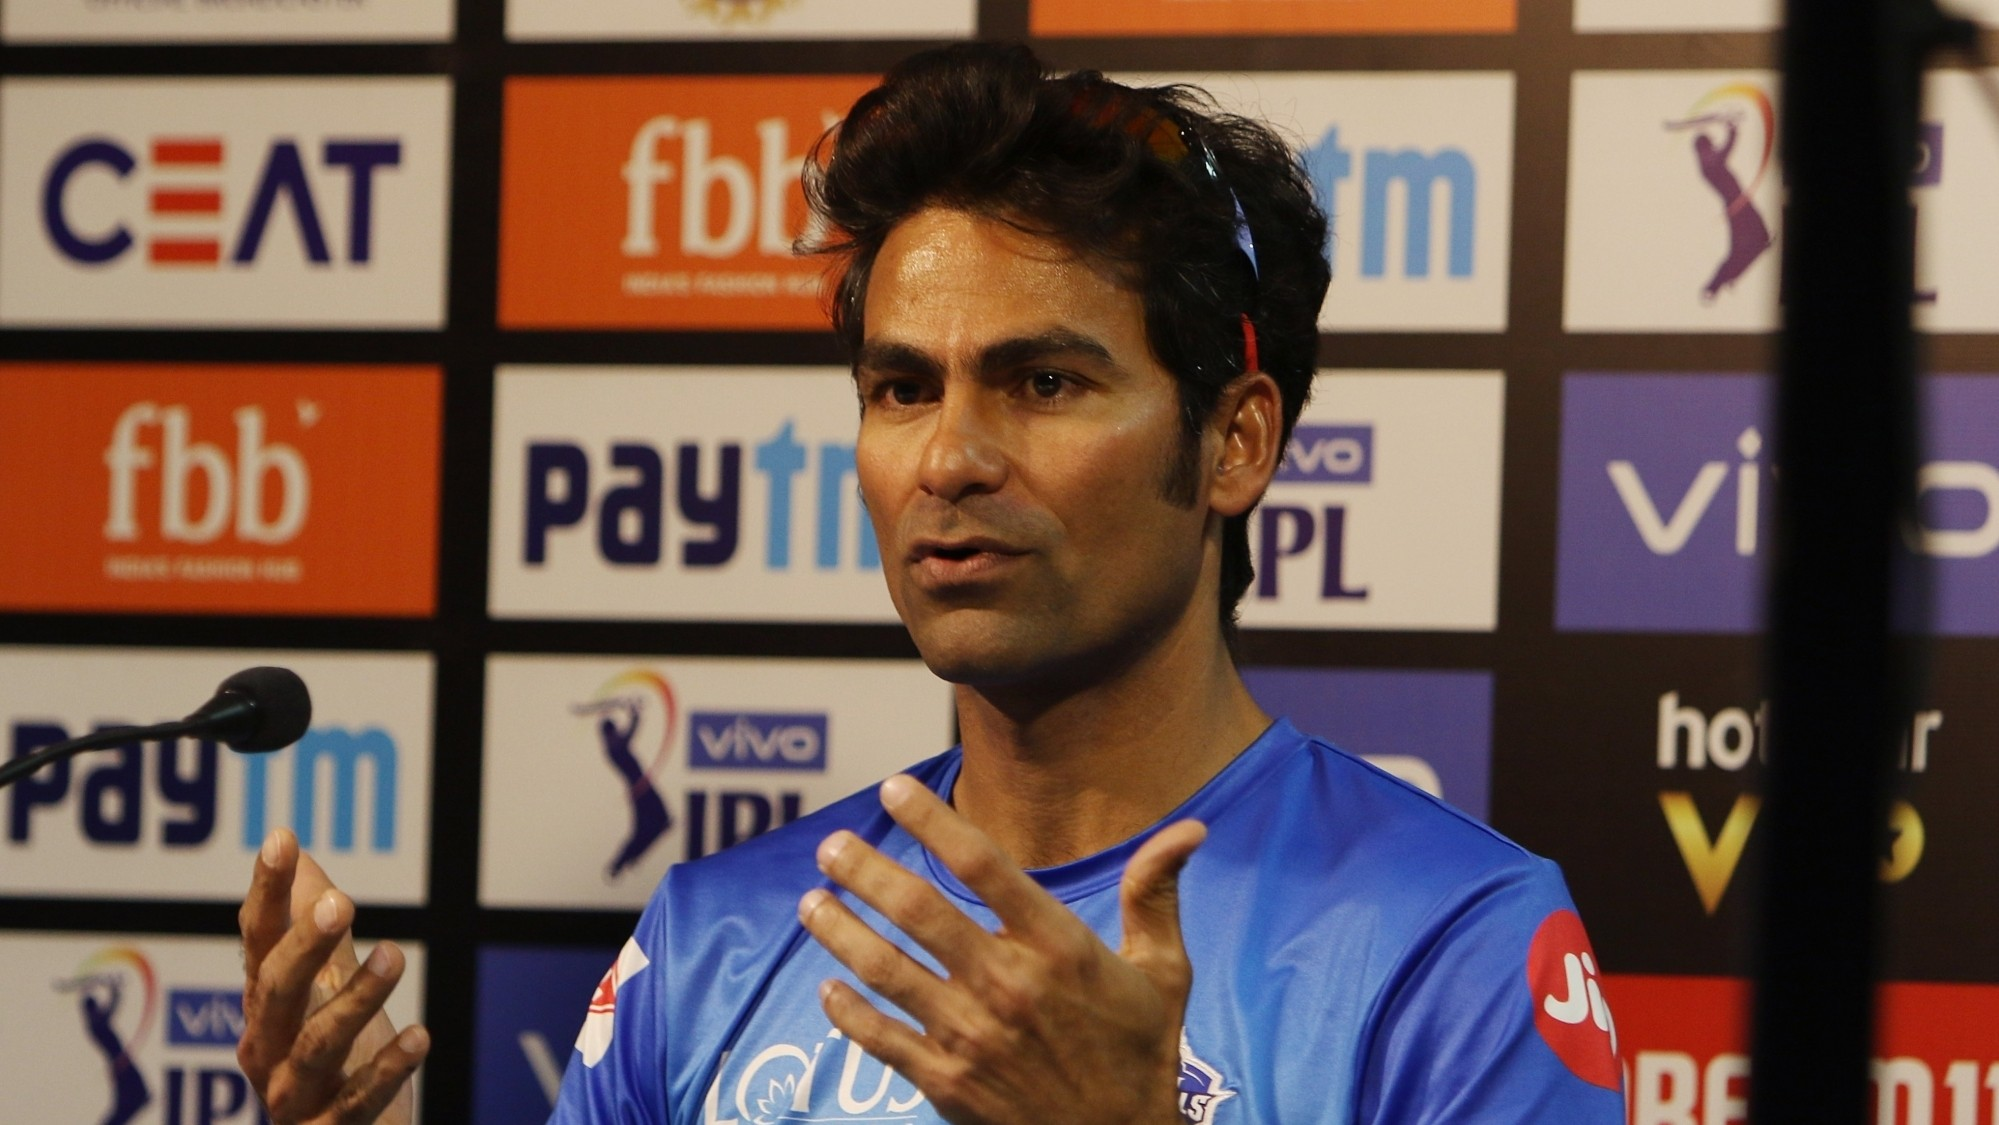 IPL 2019: Backing players is a big factor in Delhi Capitals' success this season, says Mohammad Kaif